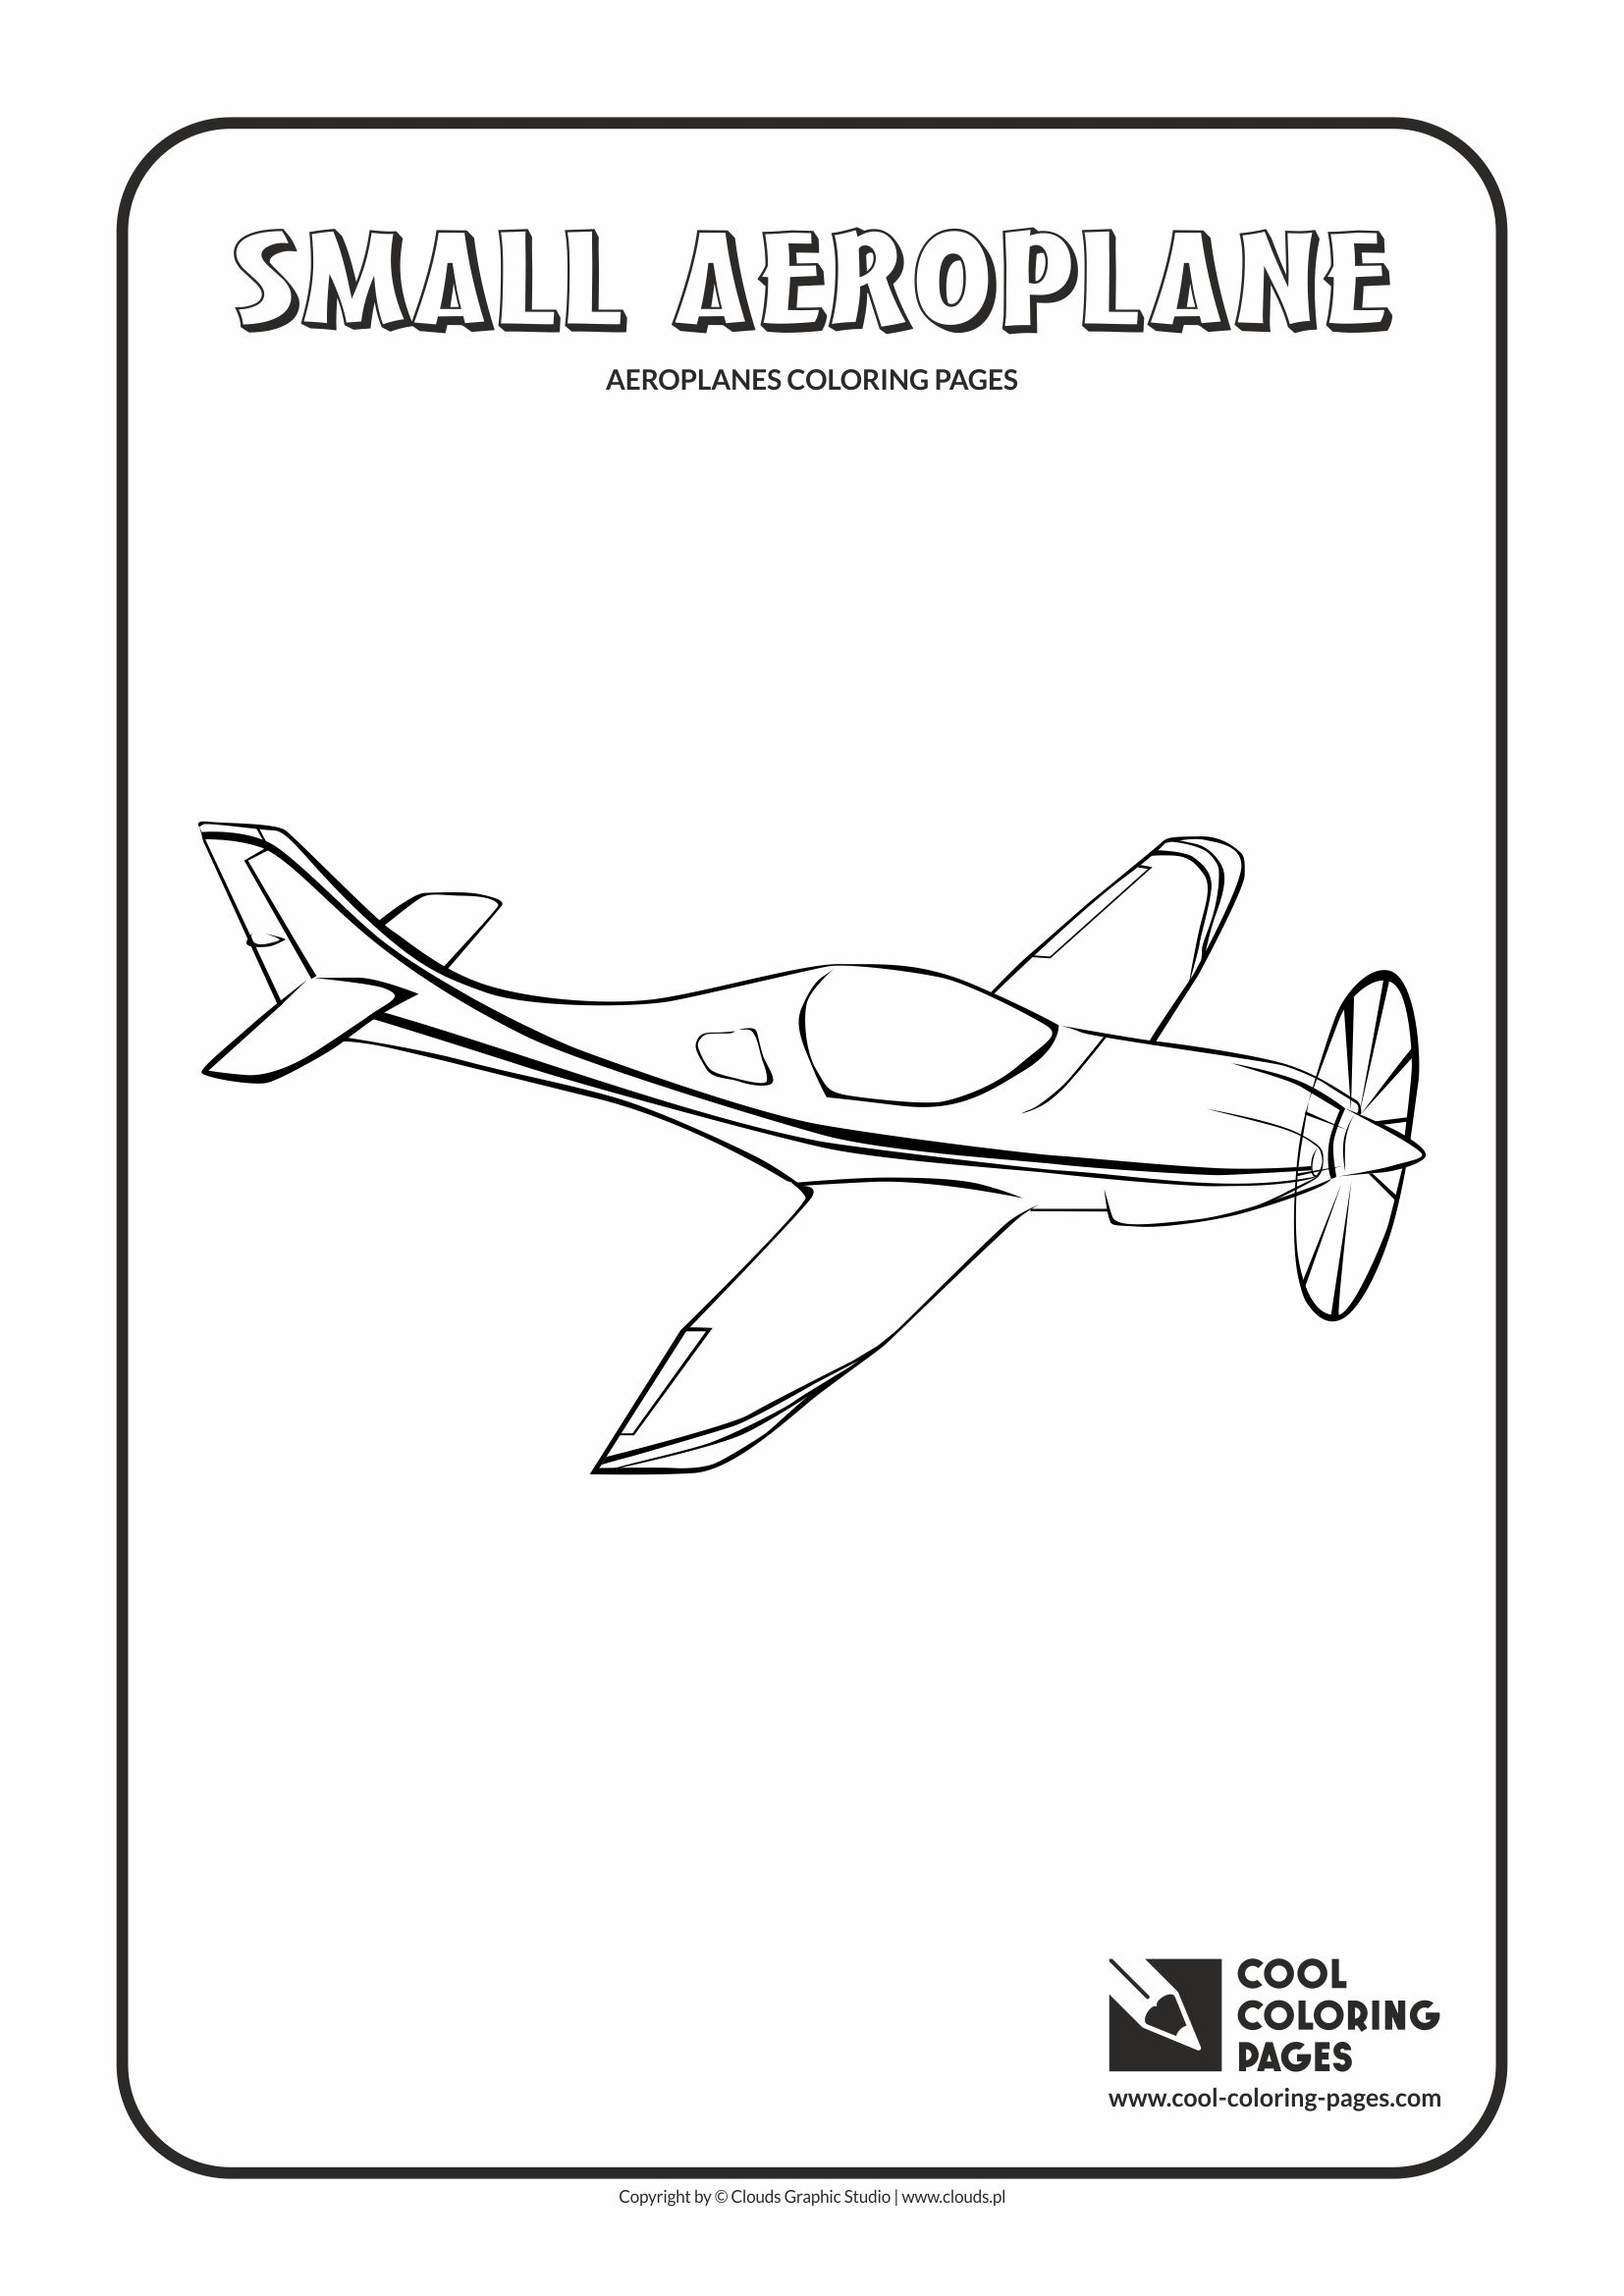 Cool Coloring Pages - Vehicles / Small aeroplane / Coloring page with small aeroplane